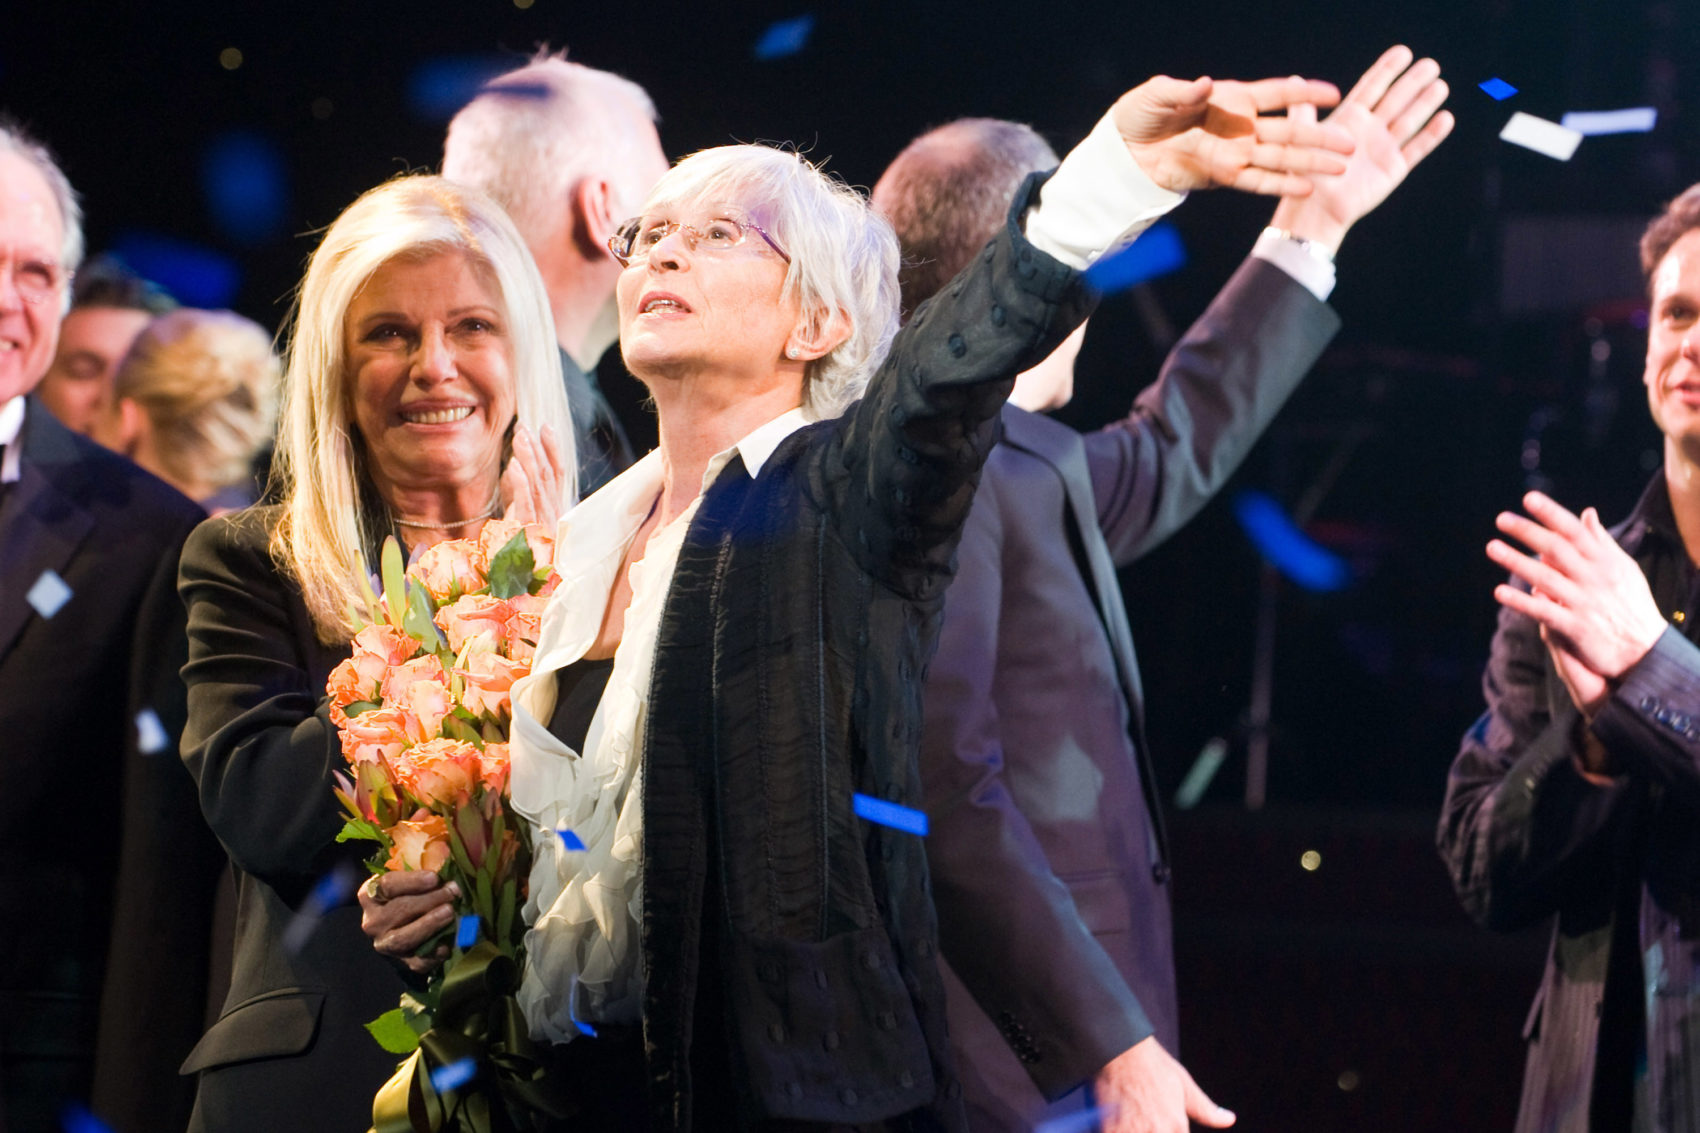 Nancy Sinatra and Twyla Tharp appear at the curtain call for the opening night performance of the Broadway musical 'Come Fly Away' in New York, Thursday, March 25, 2010. (AP Photo/Charles Sykes)